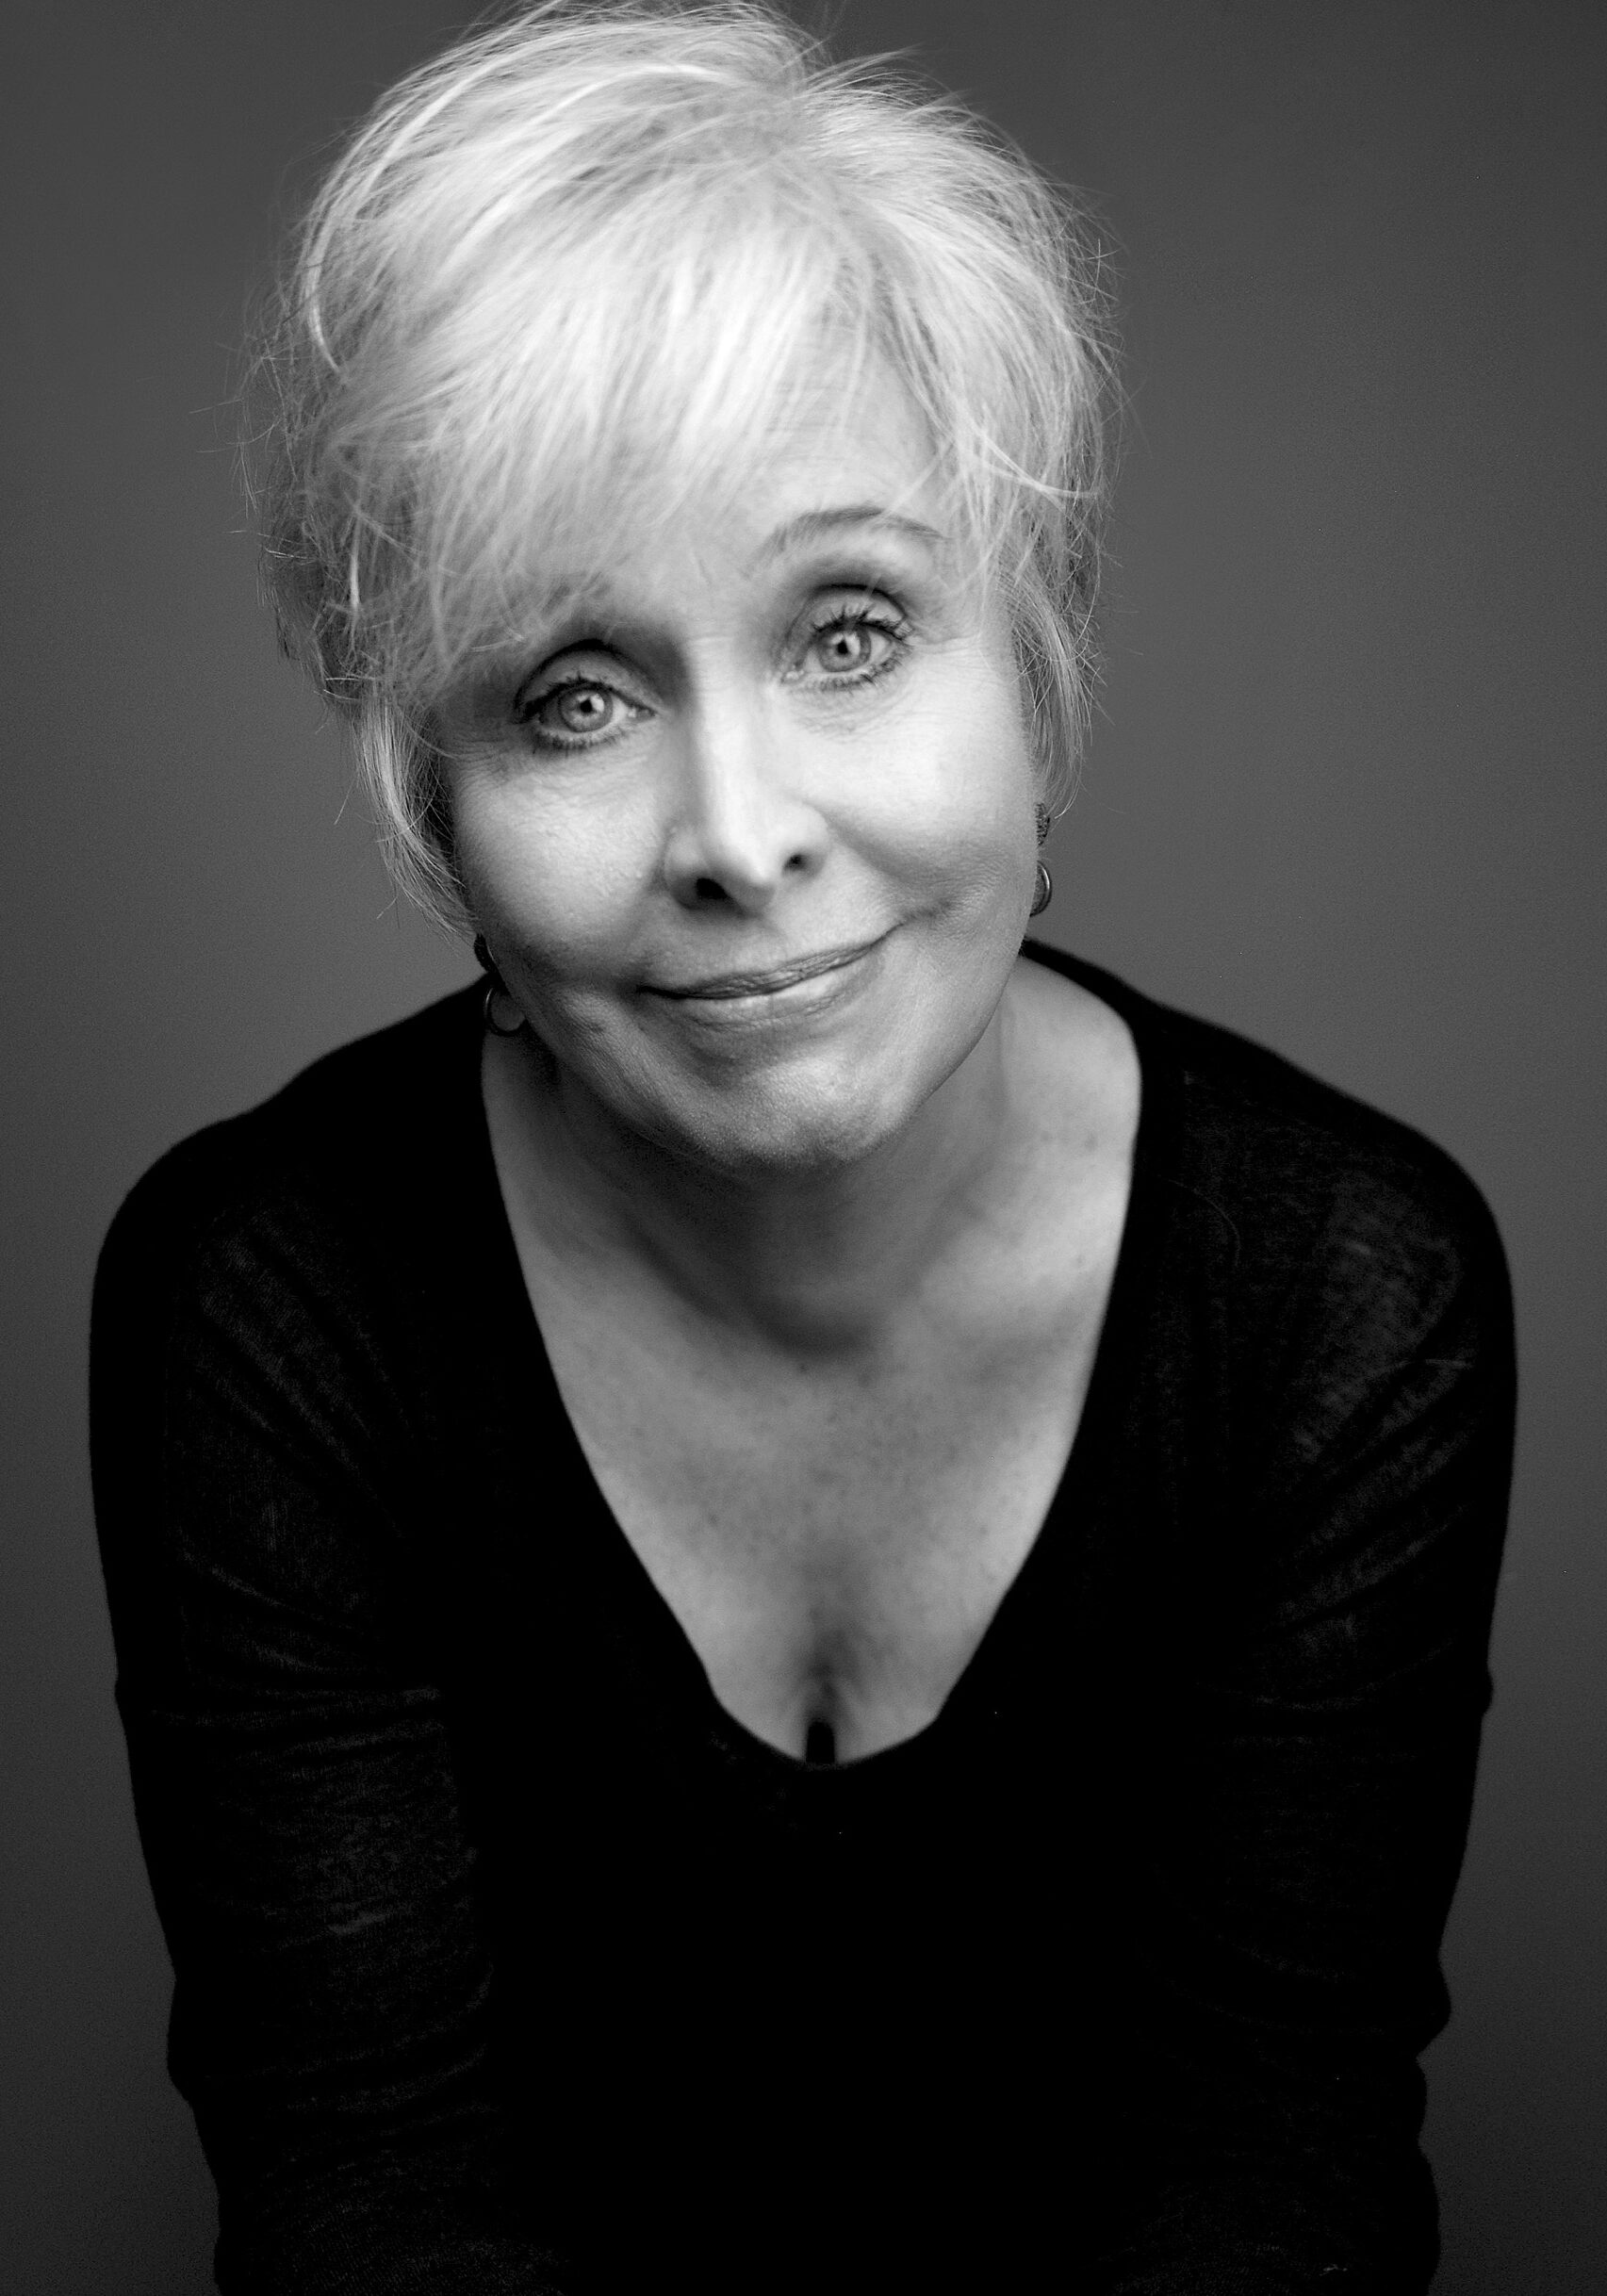 A black and white image of actress Nancy Opel wearing a black top and smiling softly at the camera.